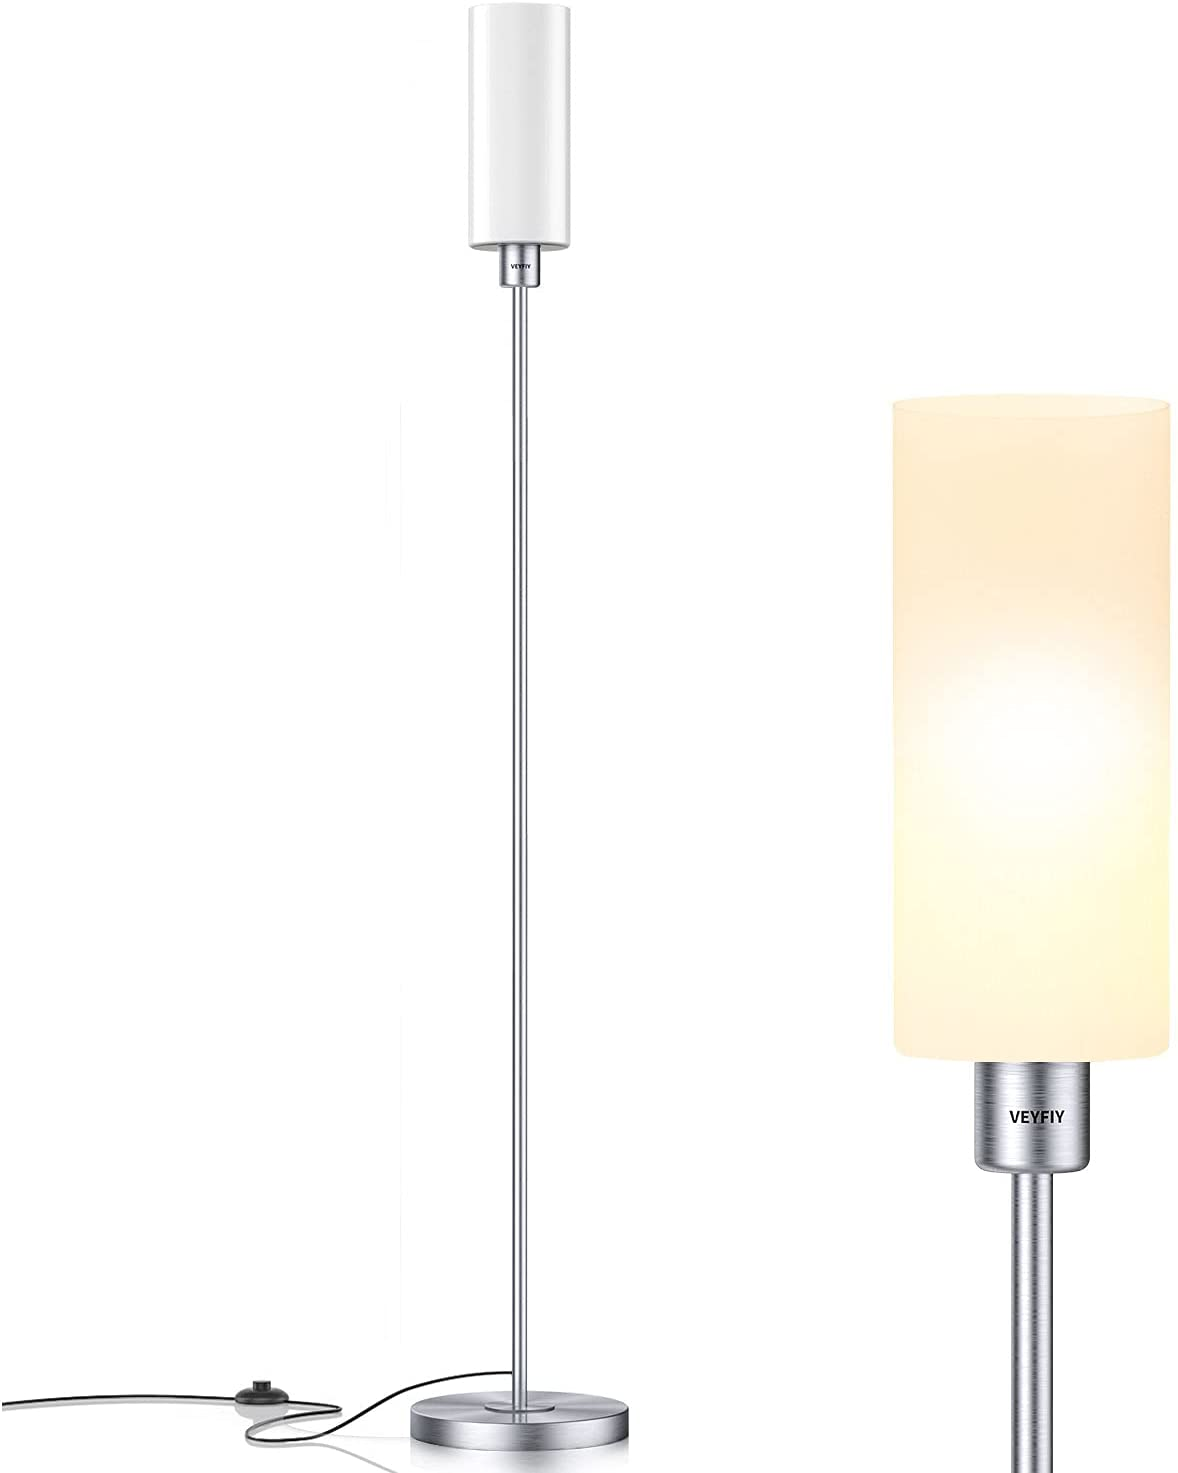 VEYFIY Floor Lamp, Floor Lamp for Living Room and Bedroom with Glass Lamp Shade, Modern Standing Lamp for Office and Home, Stylish Tall Lamp for Silver(Bulb Not Included with E26 Socket)